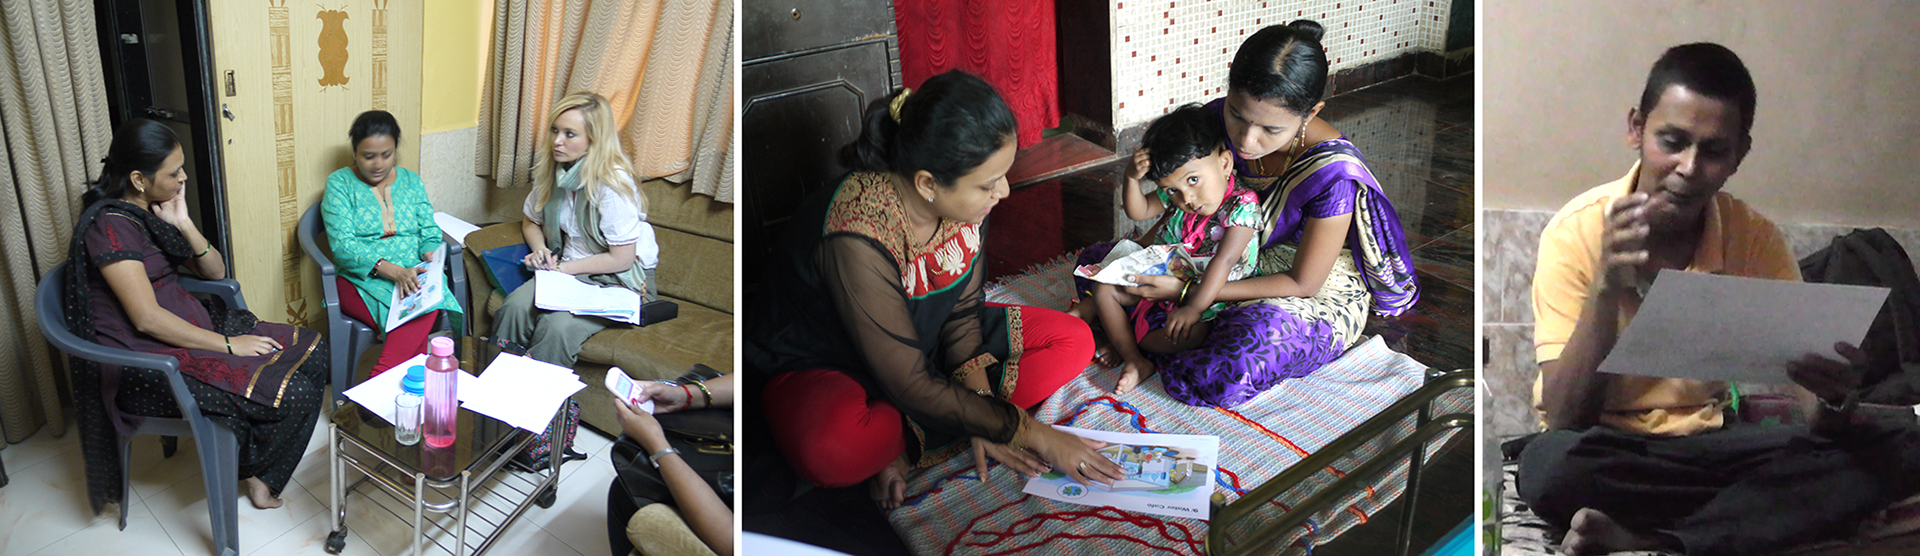 Whilst carrying out contextual interviews in households in Mumbai and surrounding villages, we tested early service concepts with customers, communicated via sketch storyboards